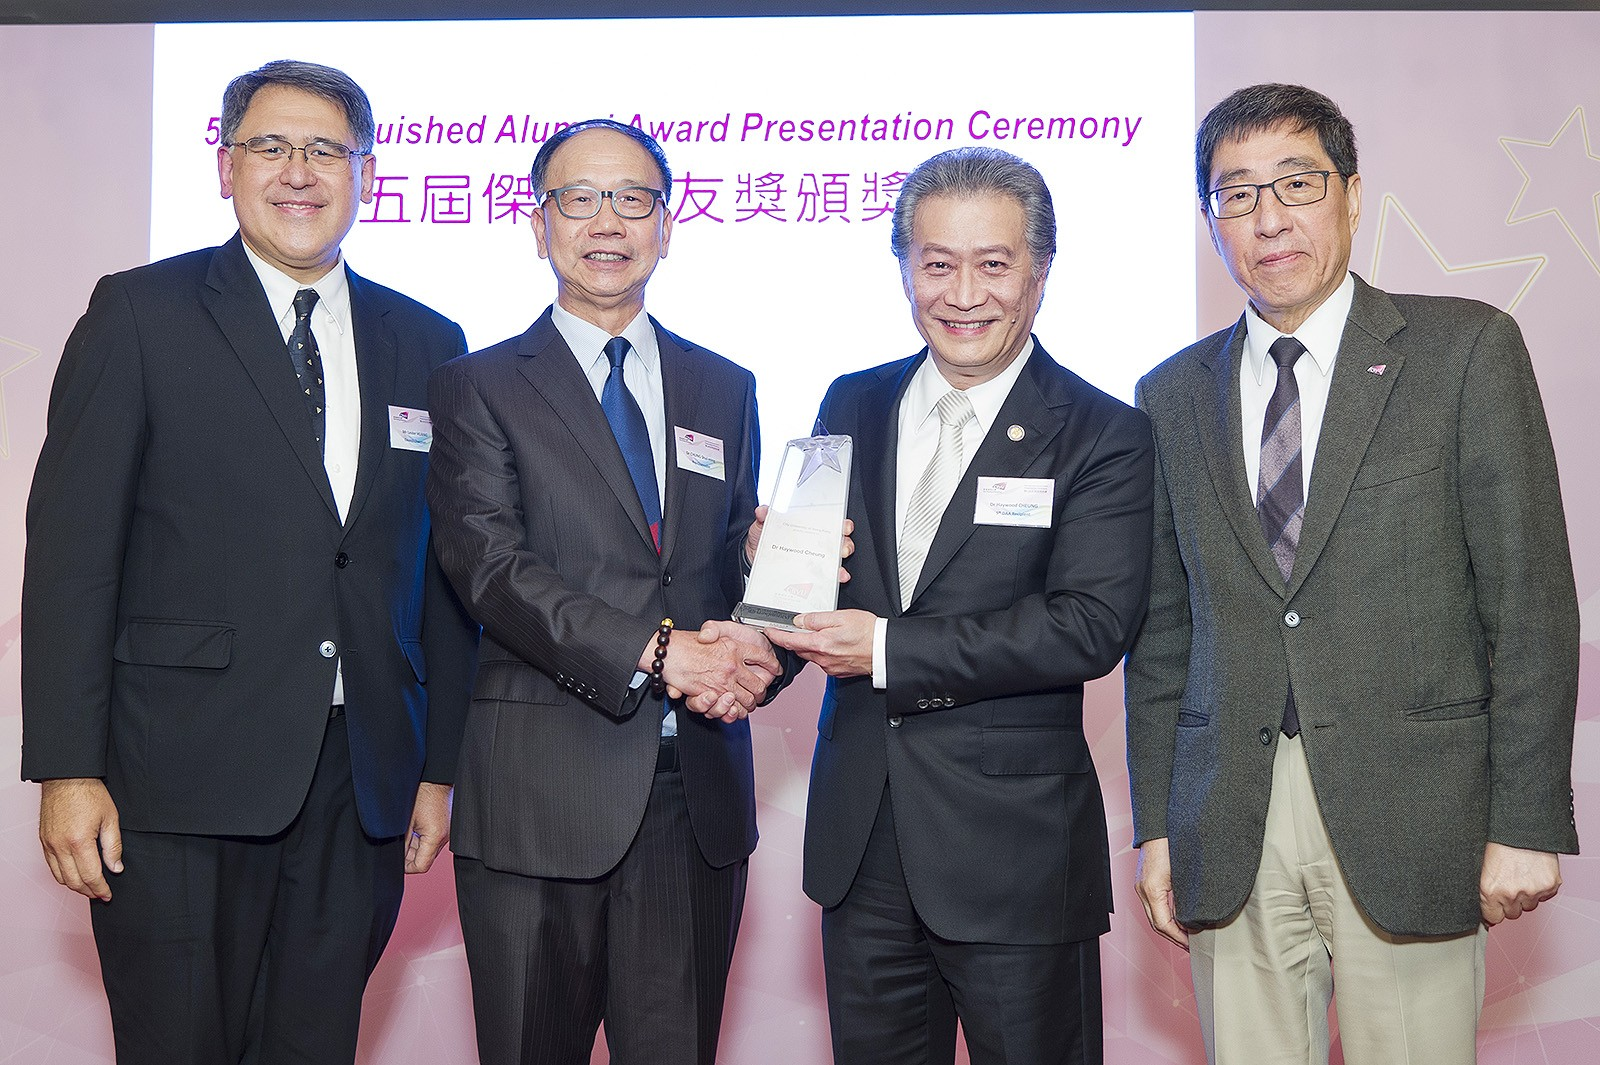 Dr Haywood Cheung (second from right) is conferred the 5th Distinguished Alumni Award of CityU. The ceremony was officiated by Dr Chung Shui-ming, CityU Pro-Chancellor (second from left), Mr Lester Garson Huang, CityU Council Chairman (far left), and Professor Way Kuo, CityU President (far right).